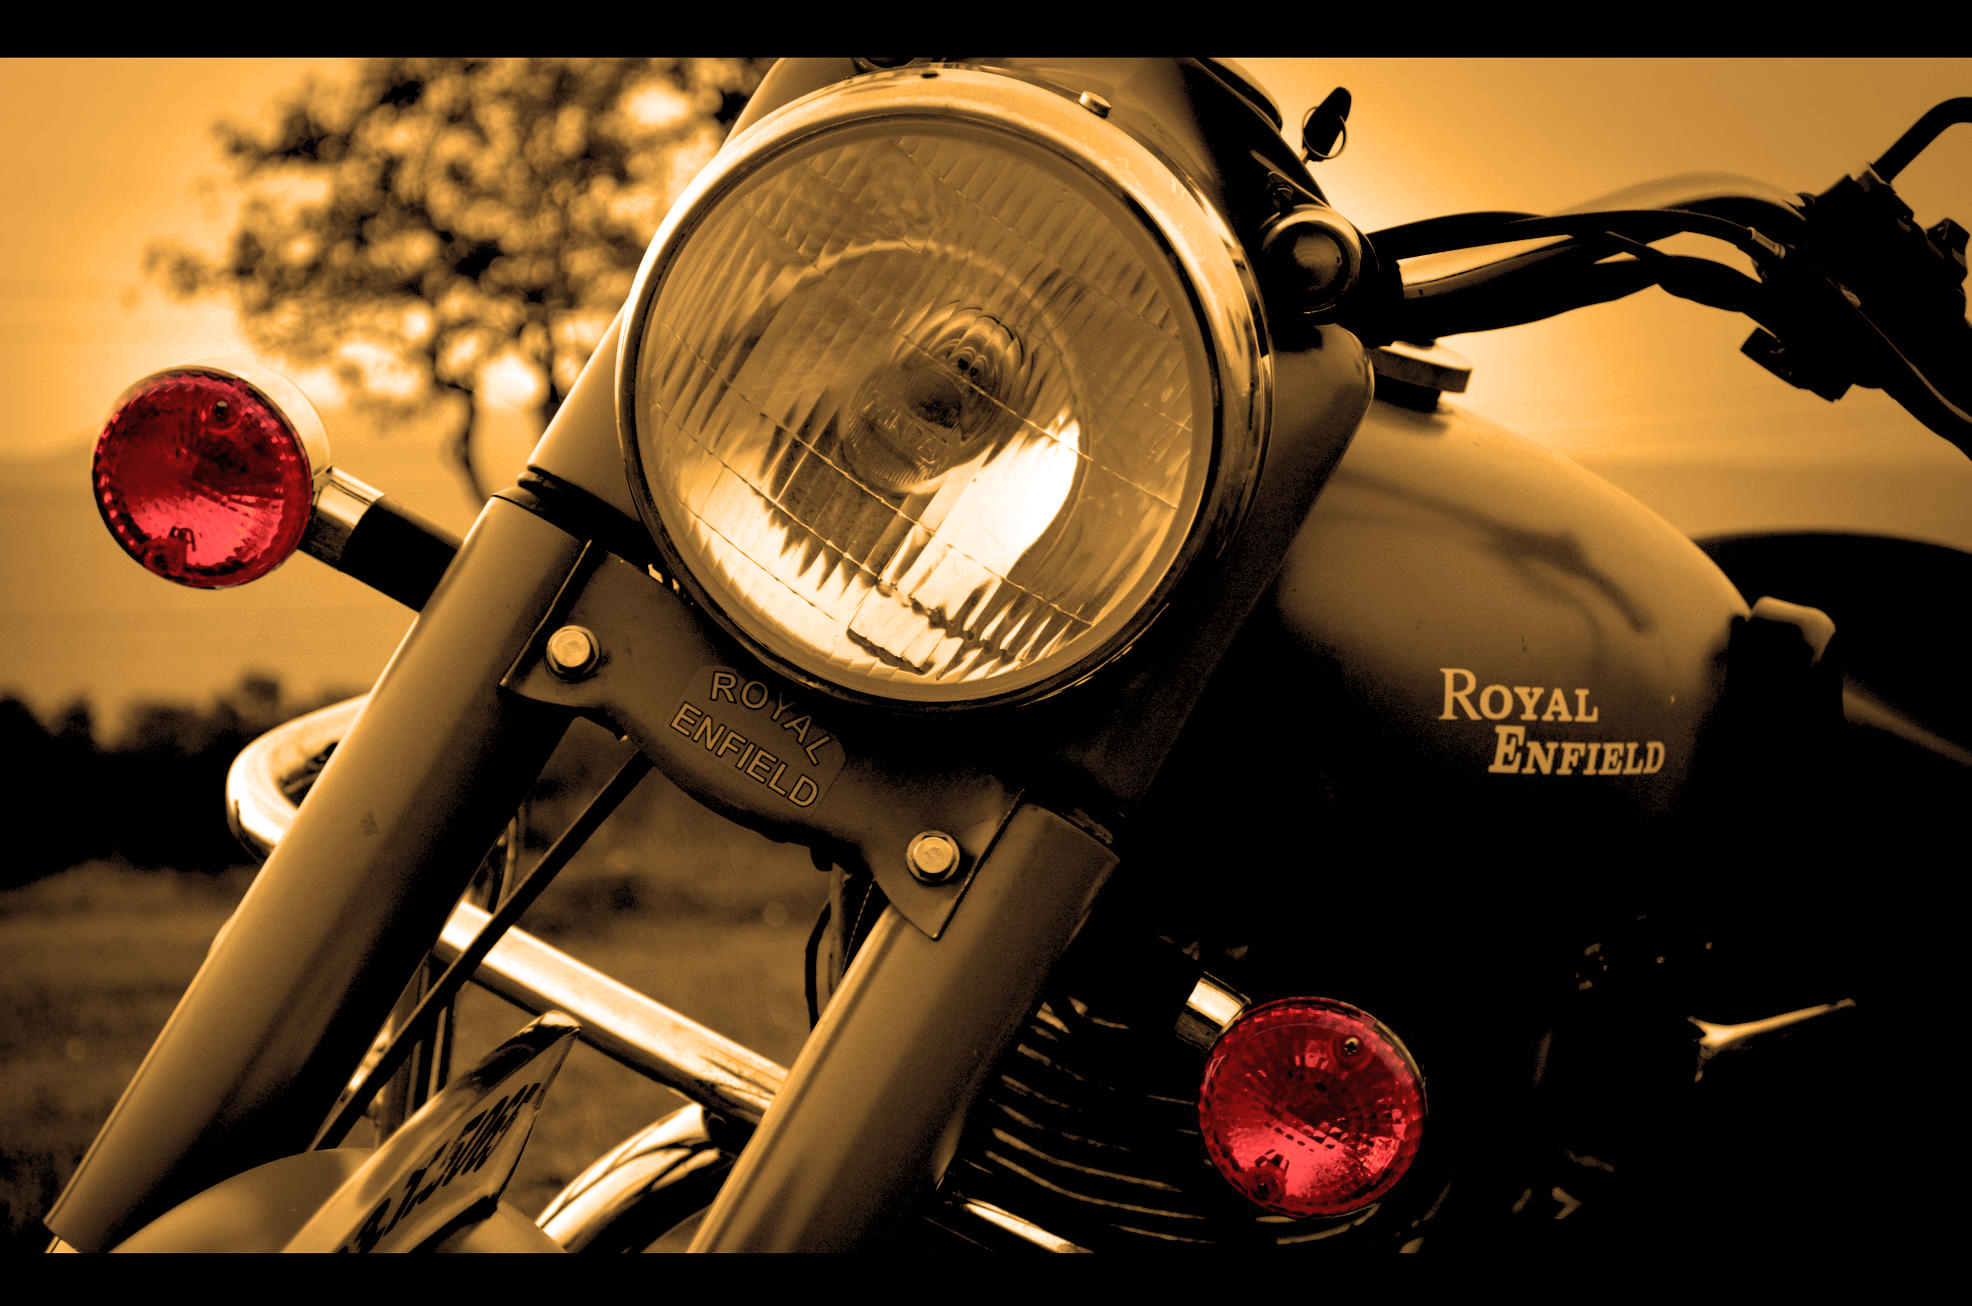 Royal Enfield HD Wallpaper Collections